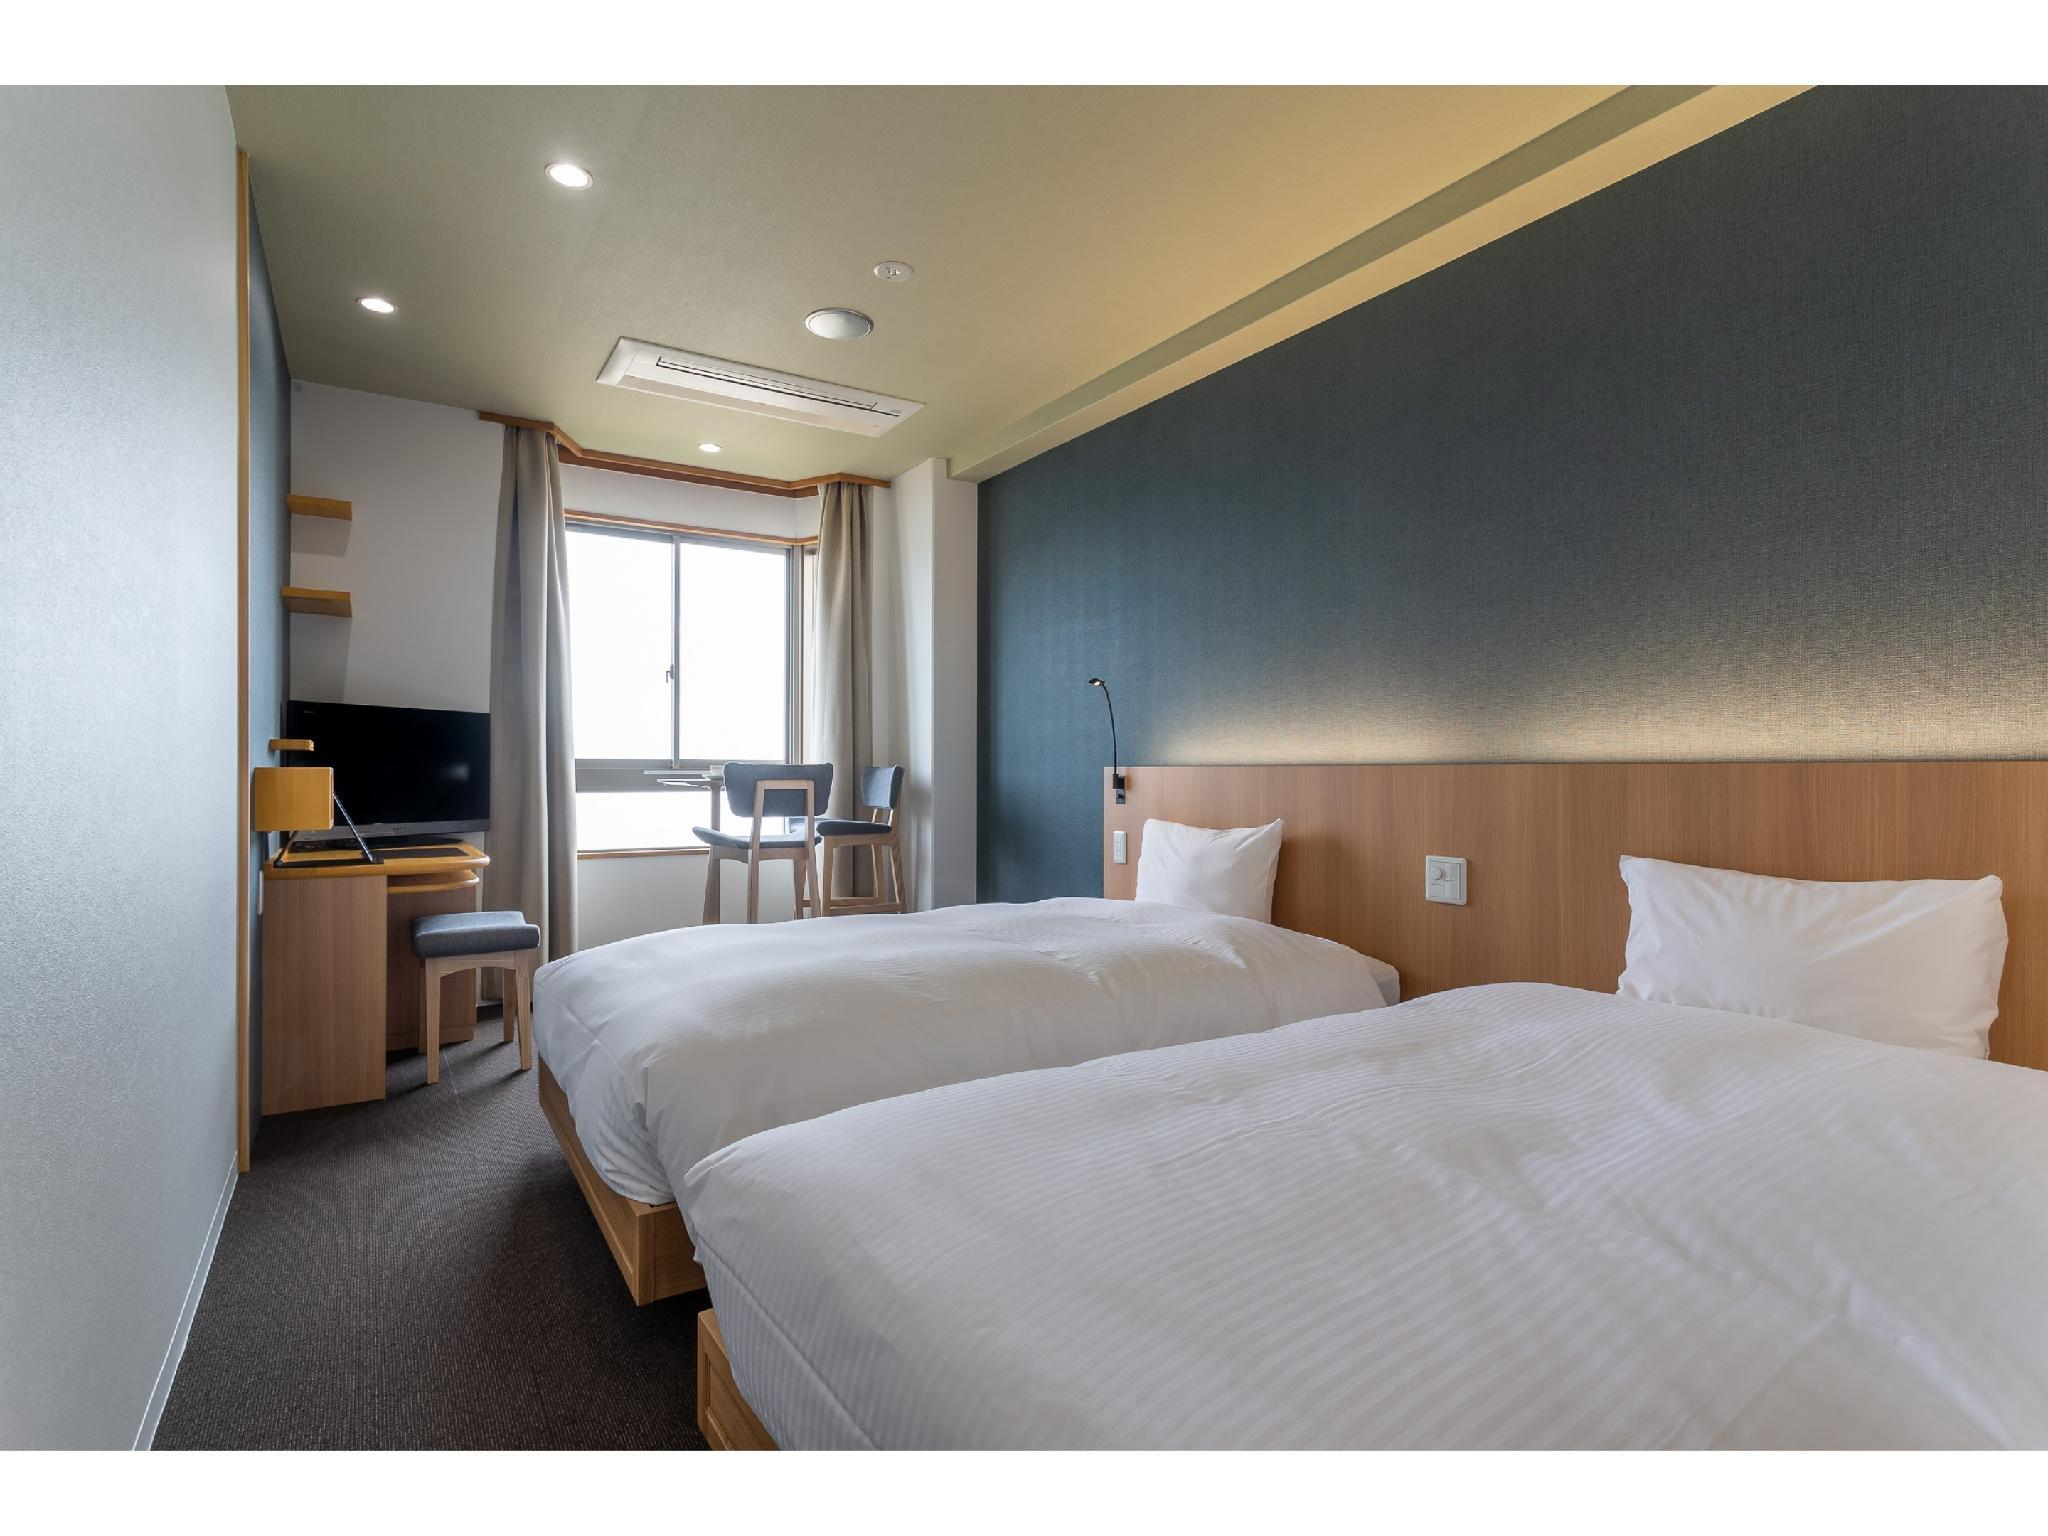 트윈룸(리뉴얼) (Twin Room *Refurbished room)